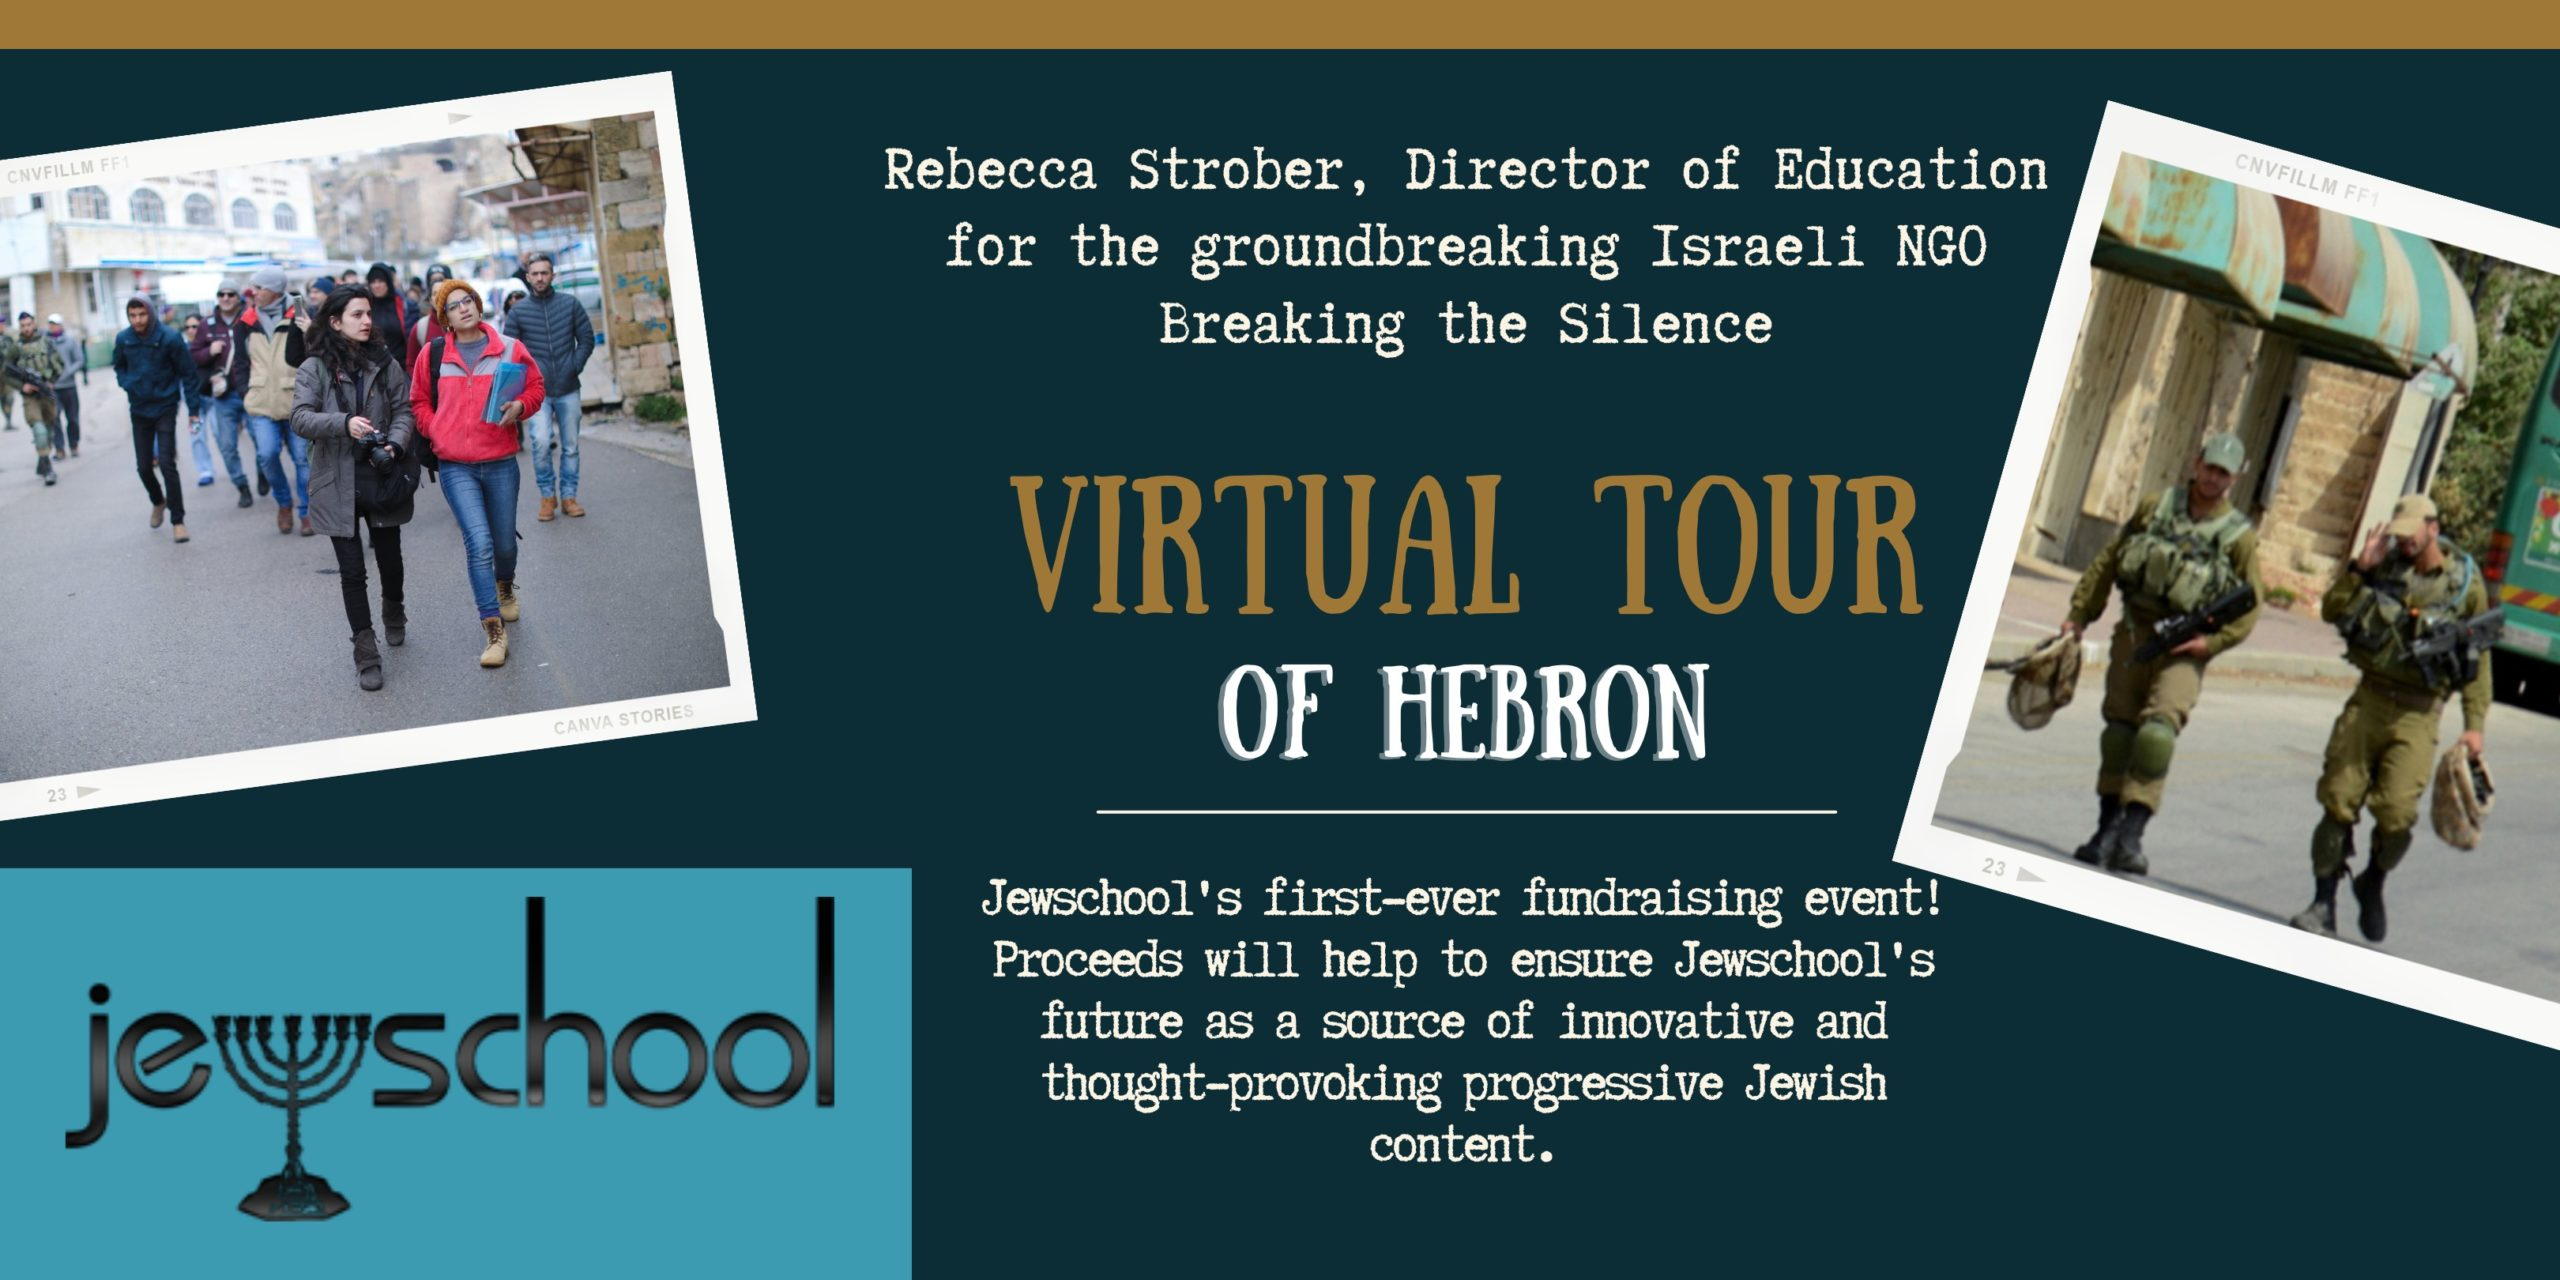 Jewschool is throwing a fundraiser!!